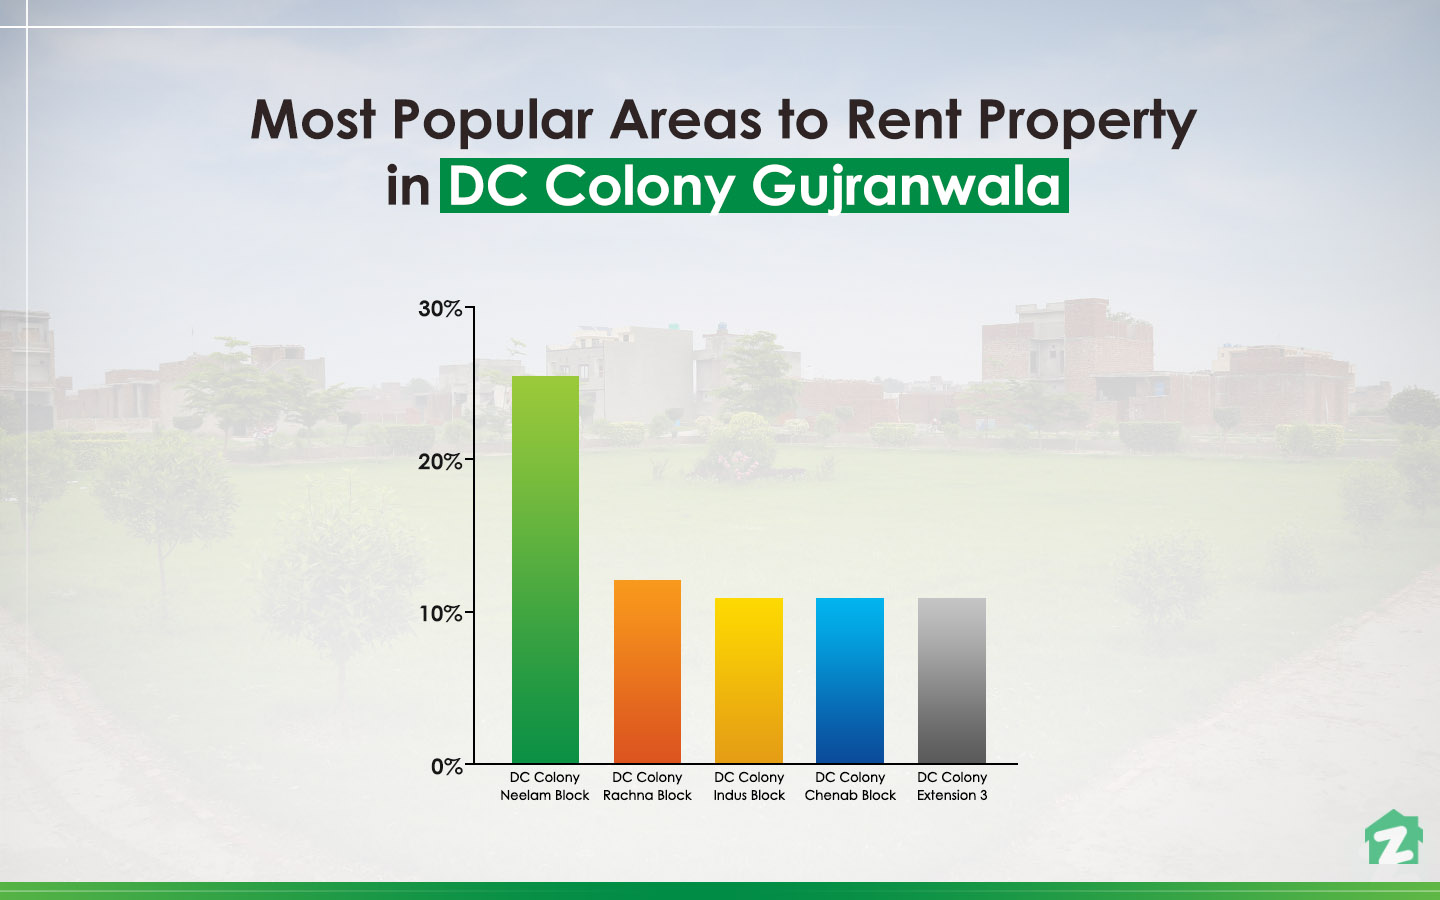 Rental Trends of DC Colony Gujranwala